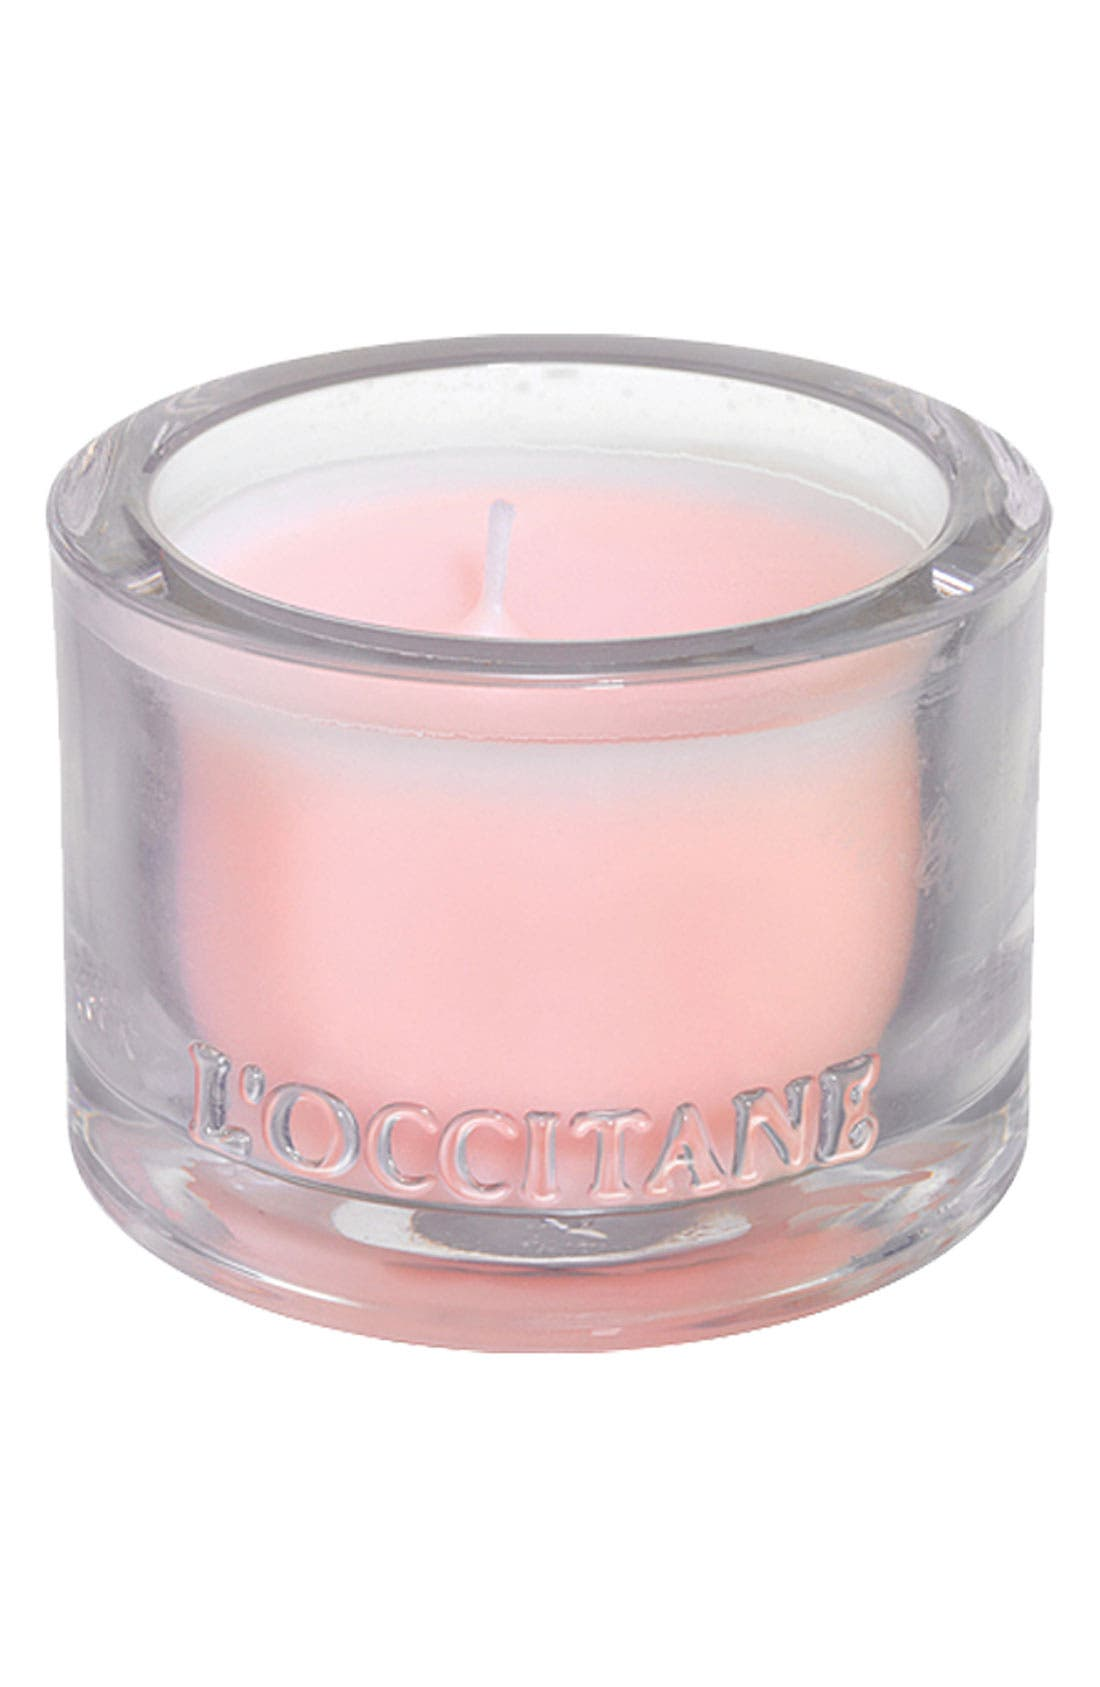 Main Image - L'Occitane 'Rose 4 Reines' Scented Candle